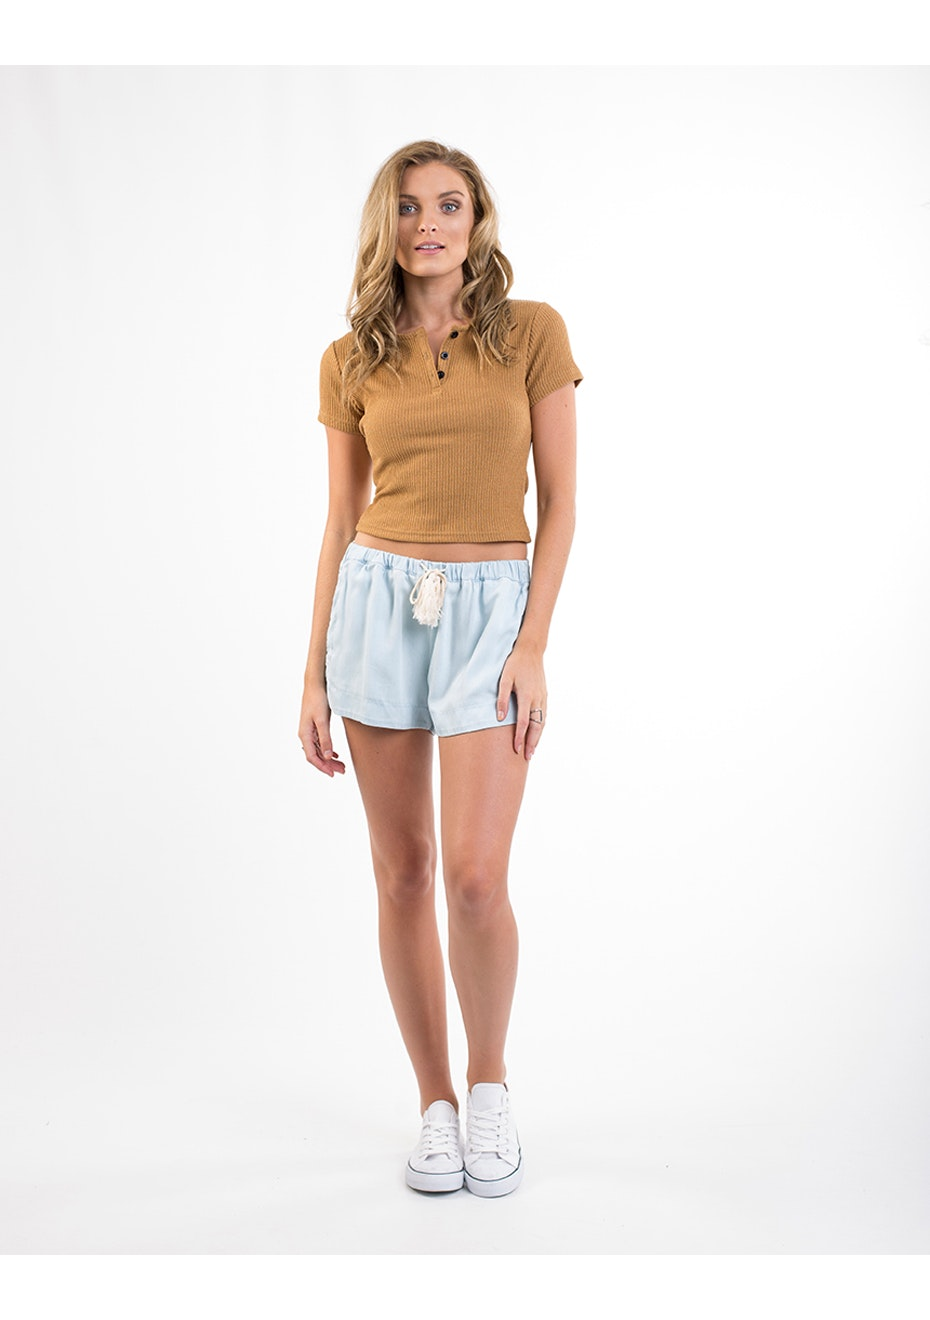 All About Eve - Jelly Crop - Mustard